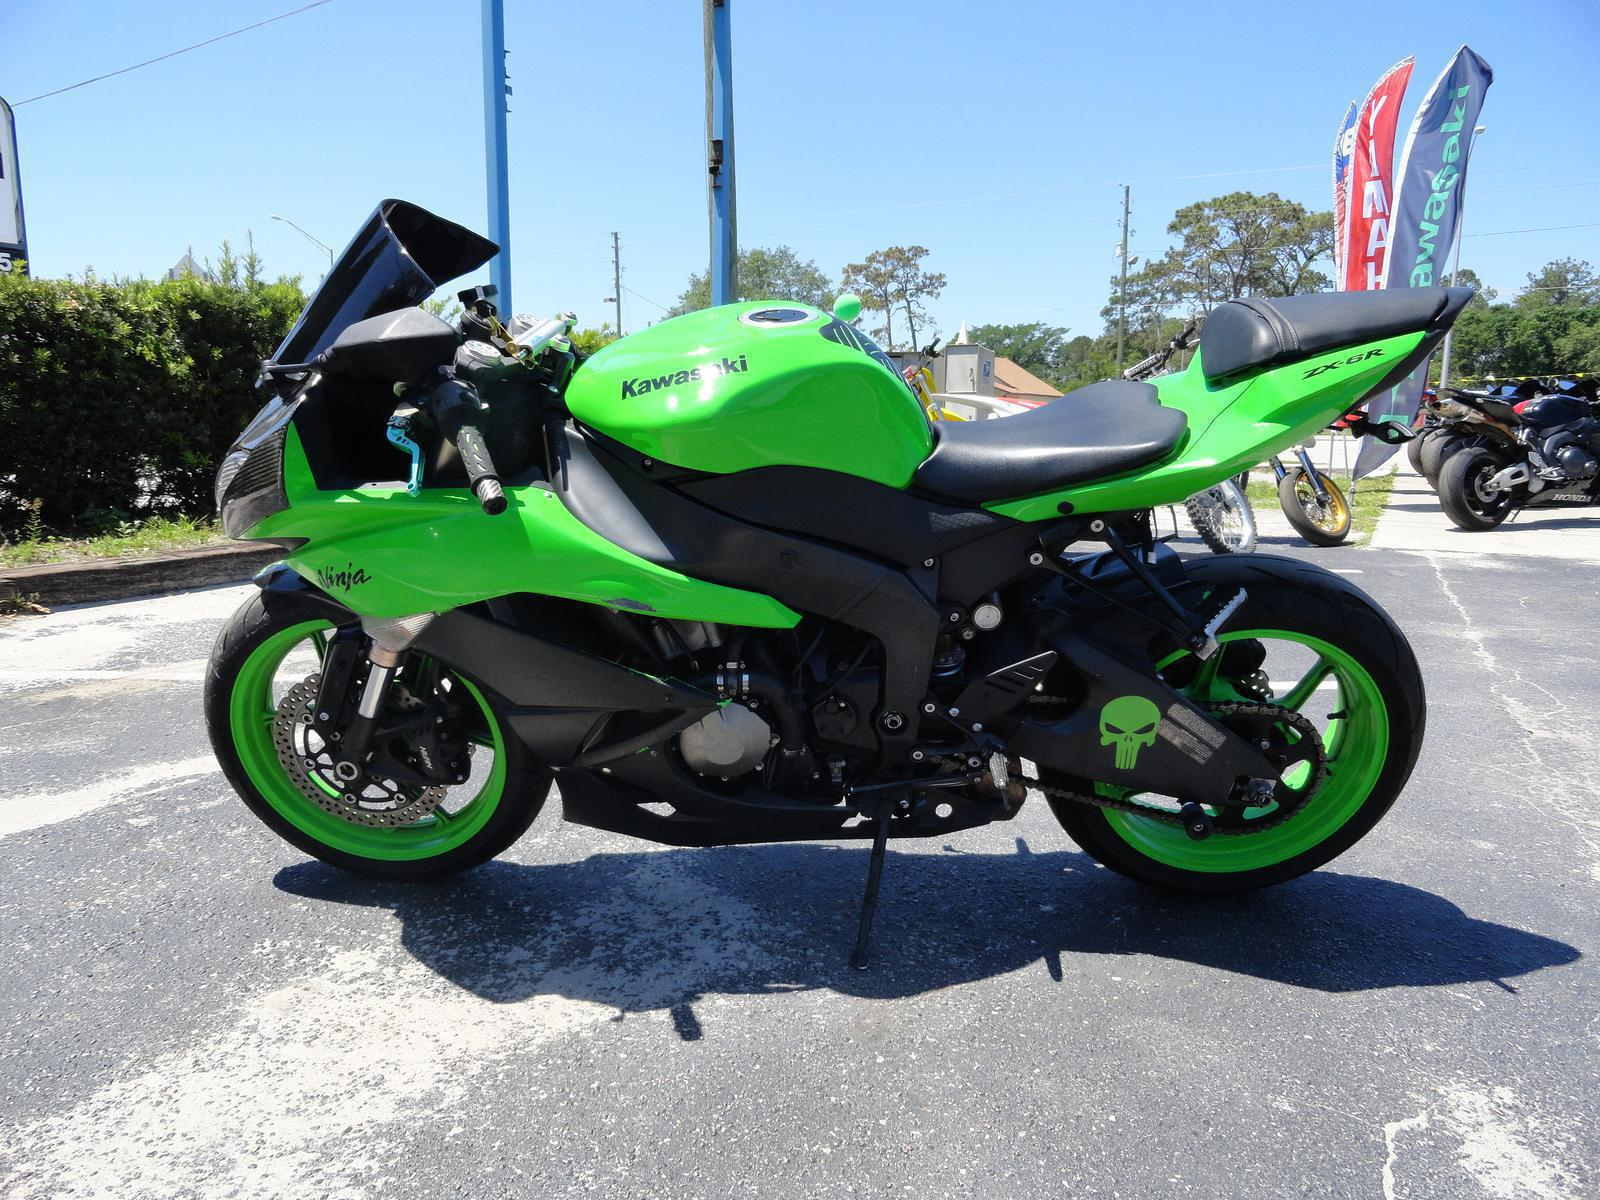 2009 Kawasaki Ninja Zx 6r For Sale In Longwood Fl Prime 300 Tarmac Full Exhaust System Carbon Fiber Dsc05683